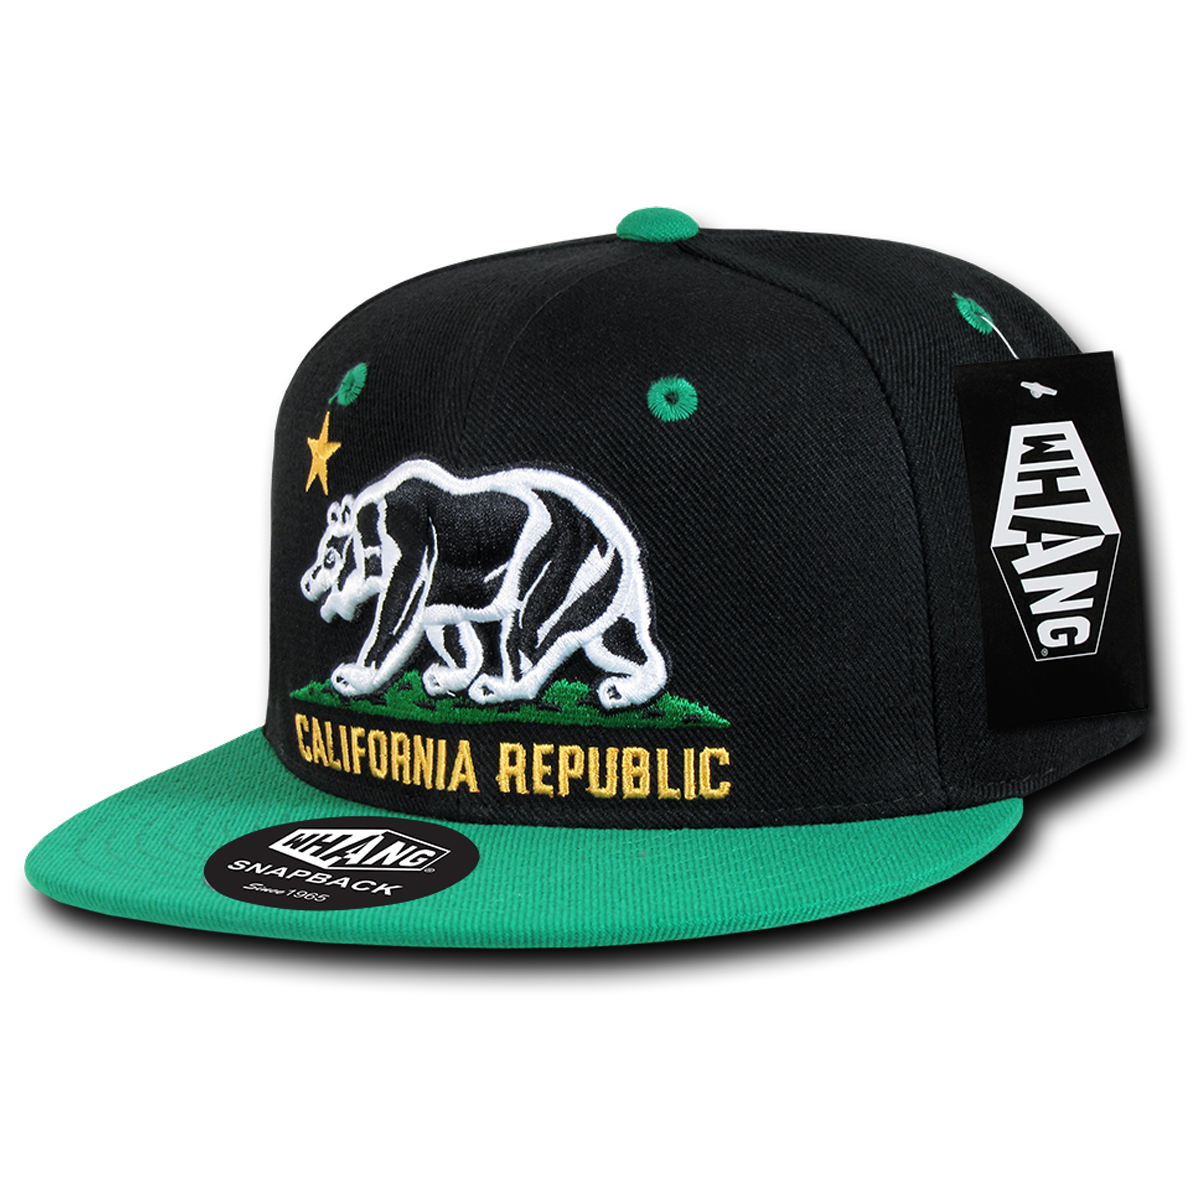 California Republic Cali State Bear Flag Snapback Hat by Whang Black Kelly Green